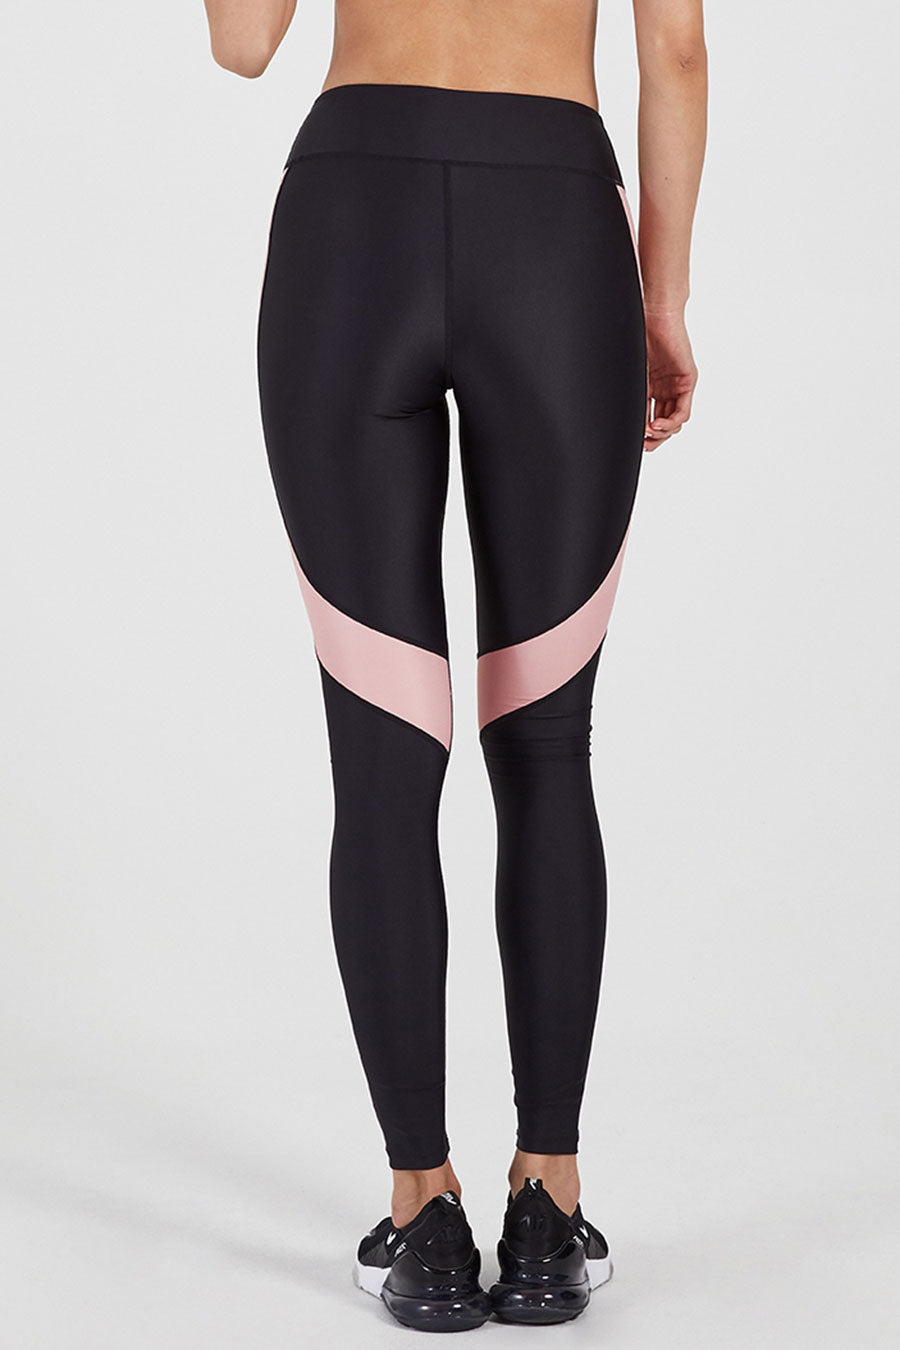 The Chasse Legging